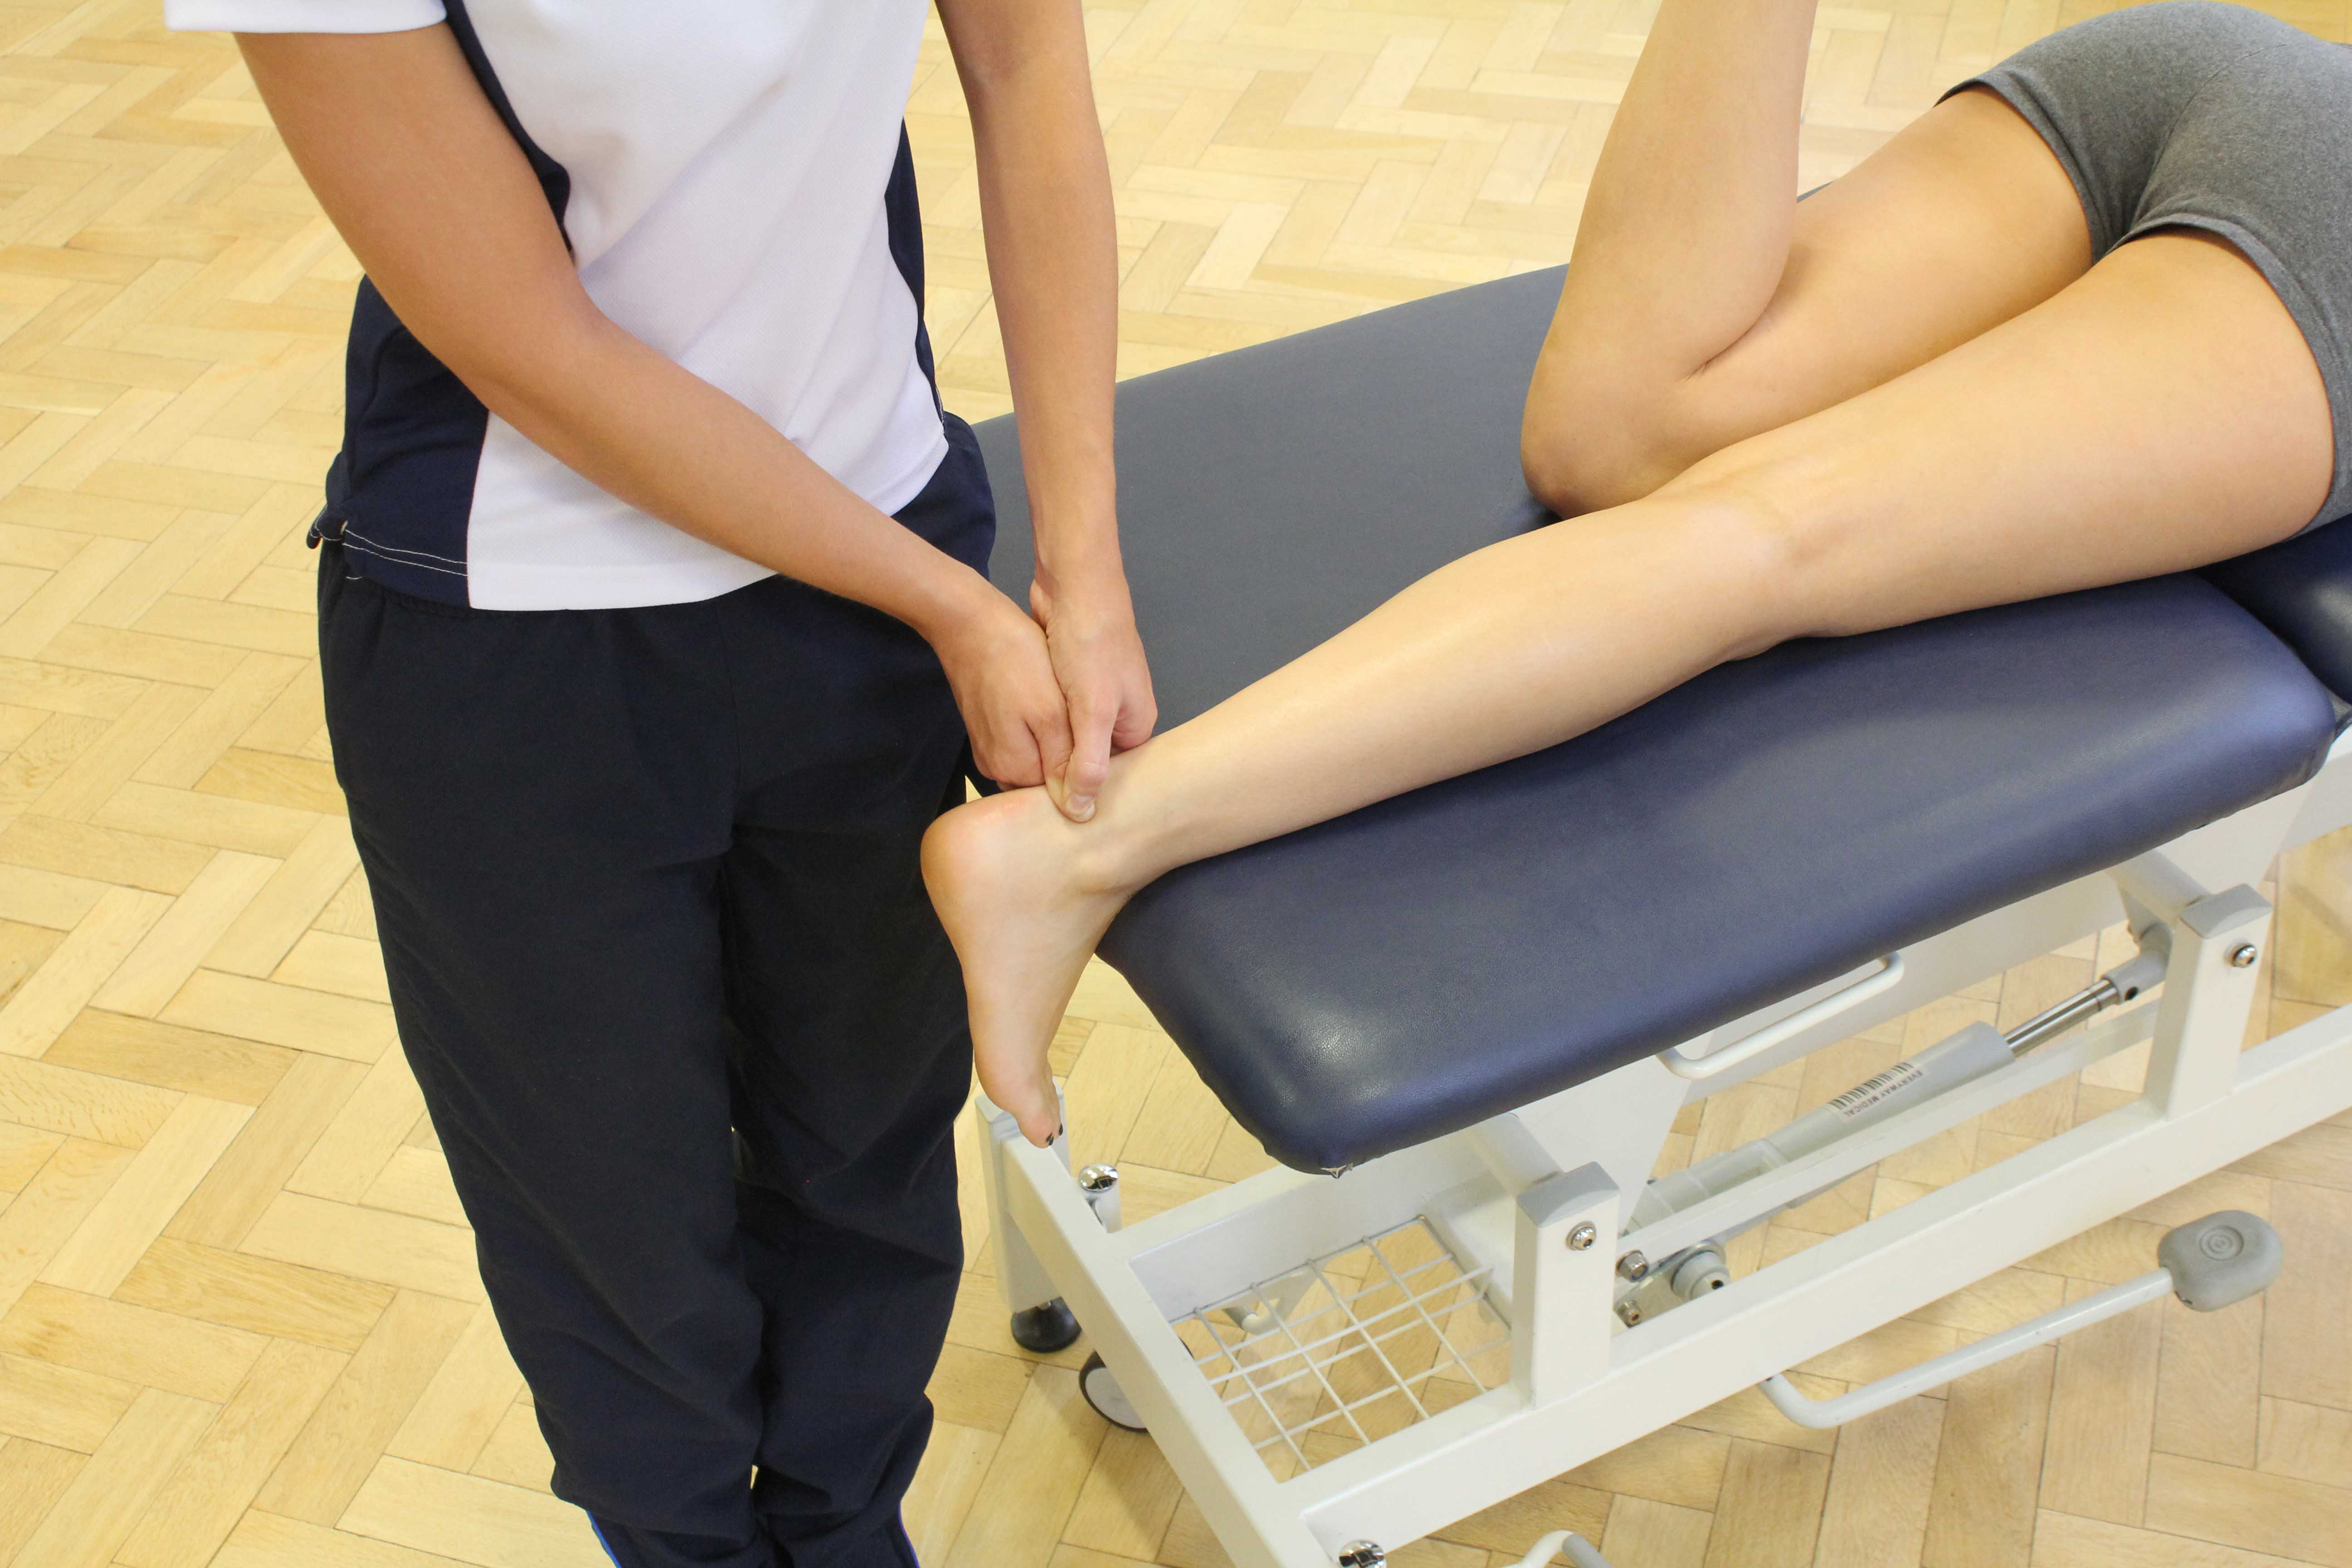 Transverse friction massage applied to the achilles tendon